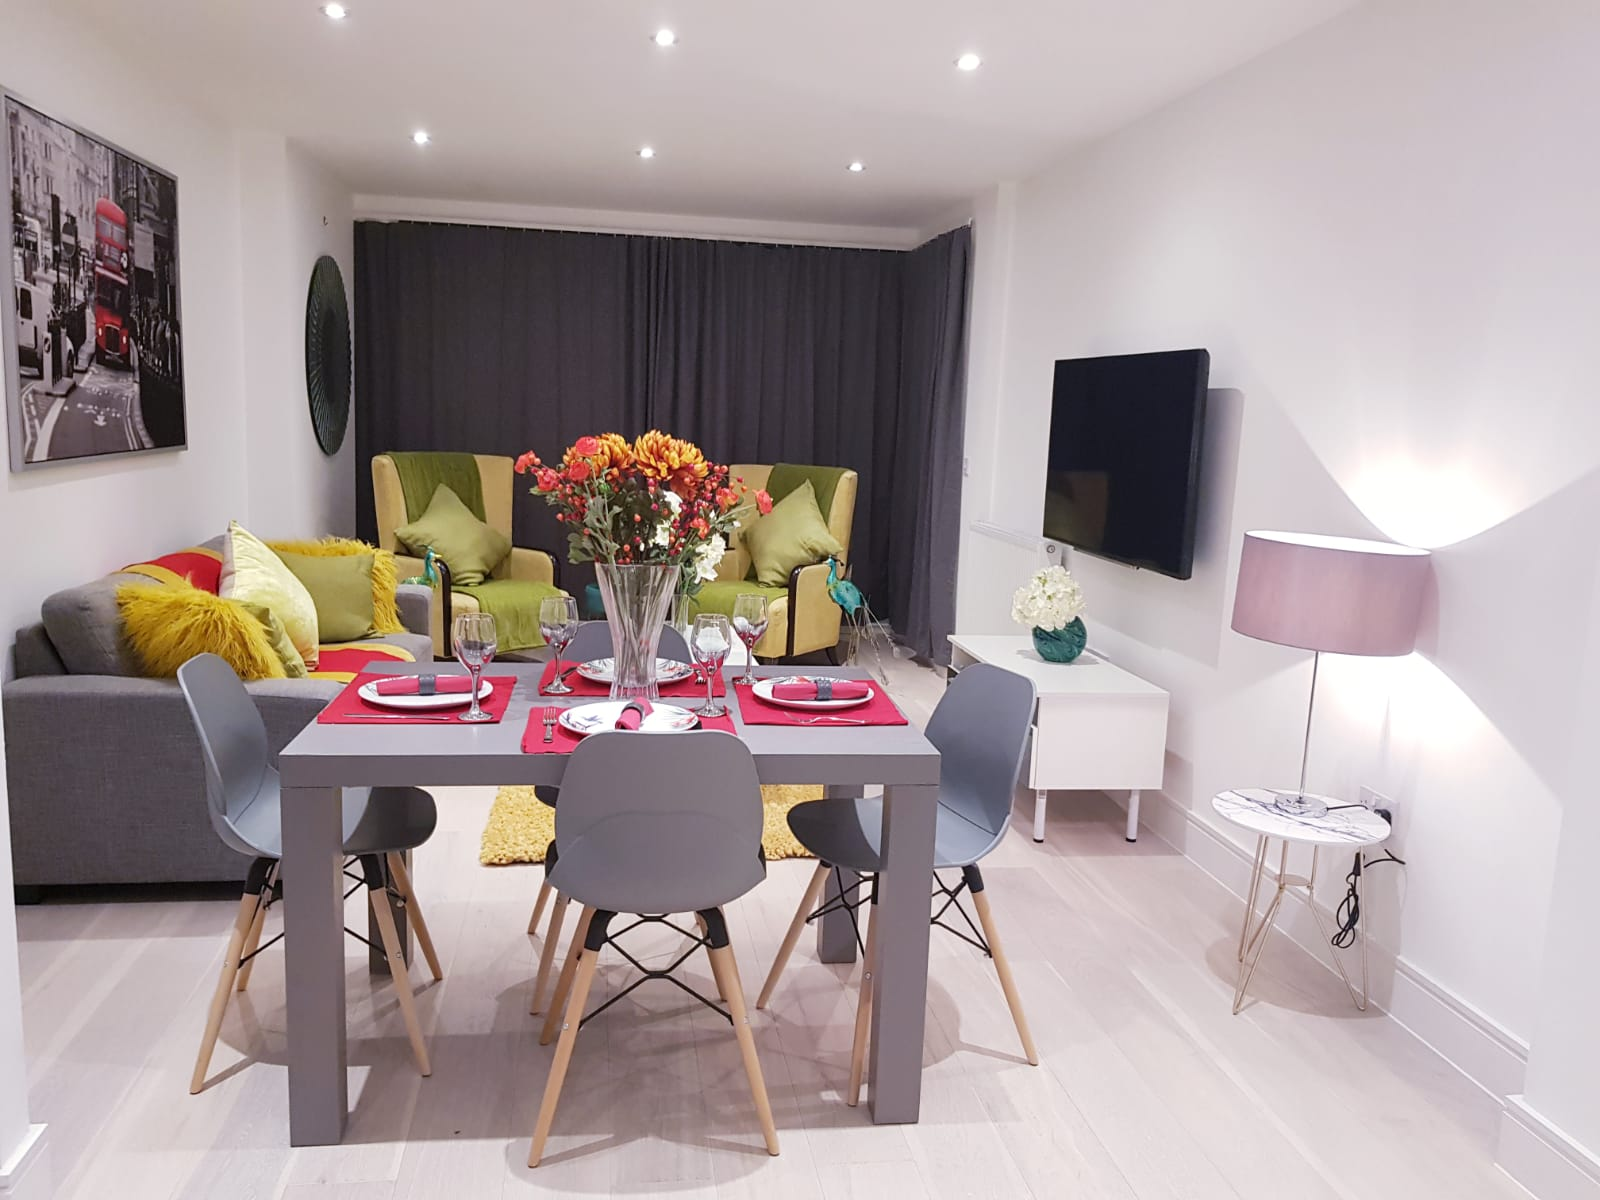 Dining area at Noble House Apartment, Chiswick, London